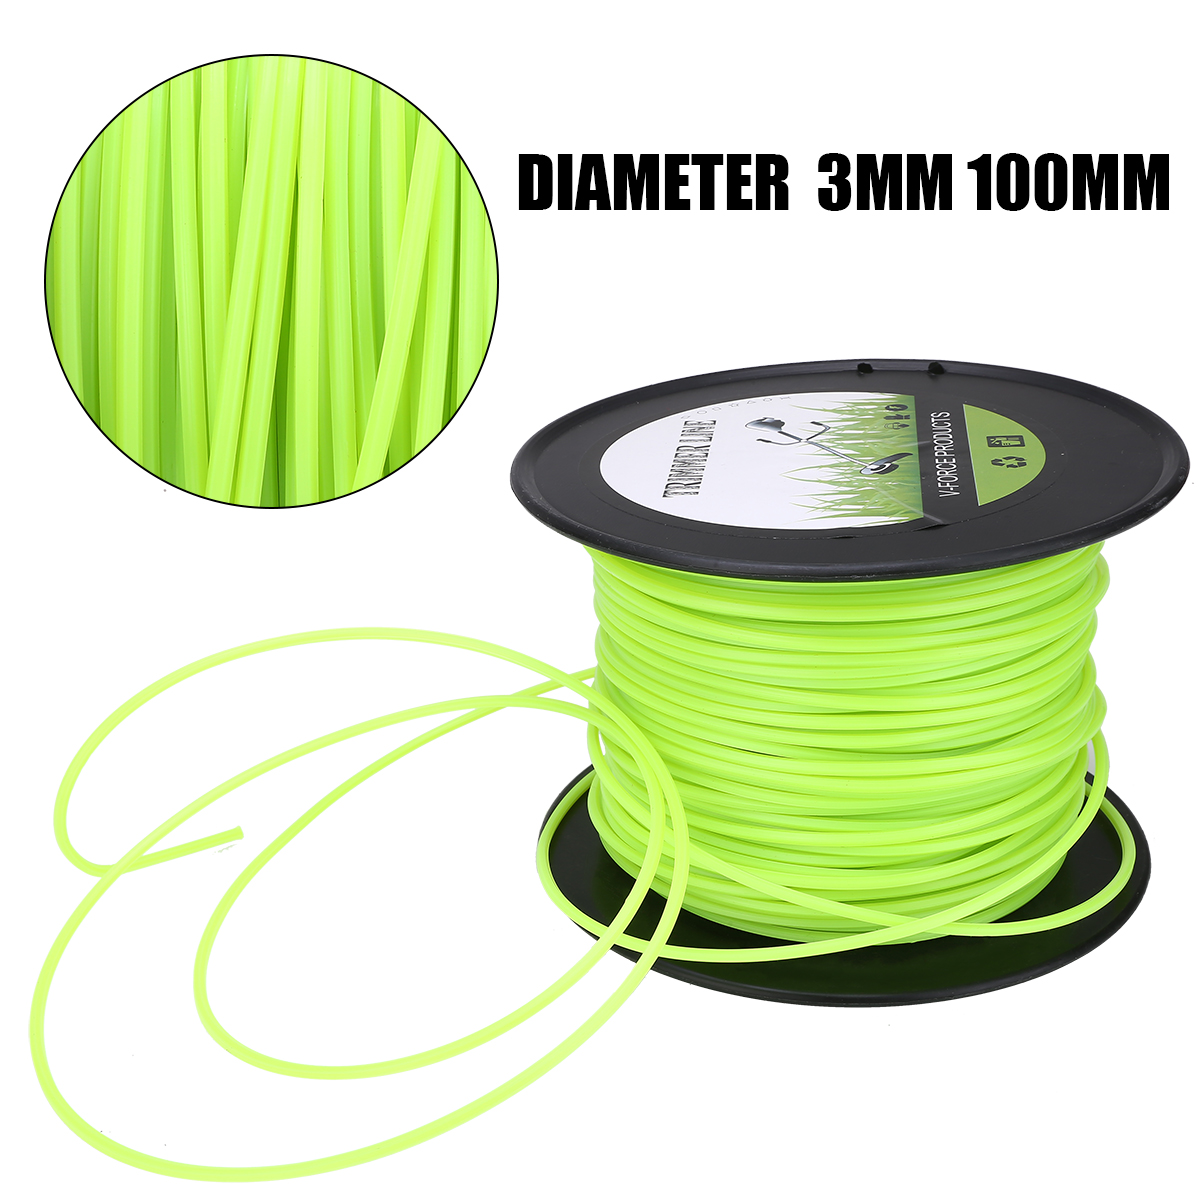 100m 3mm Lawn Mower Trimmer Line Nylon Rope Brushcutter Grass Trimmer Thread Rope Mowing Wire Cutting Mowing Tool Garden Tool